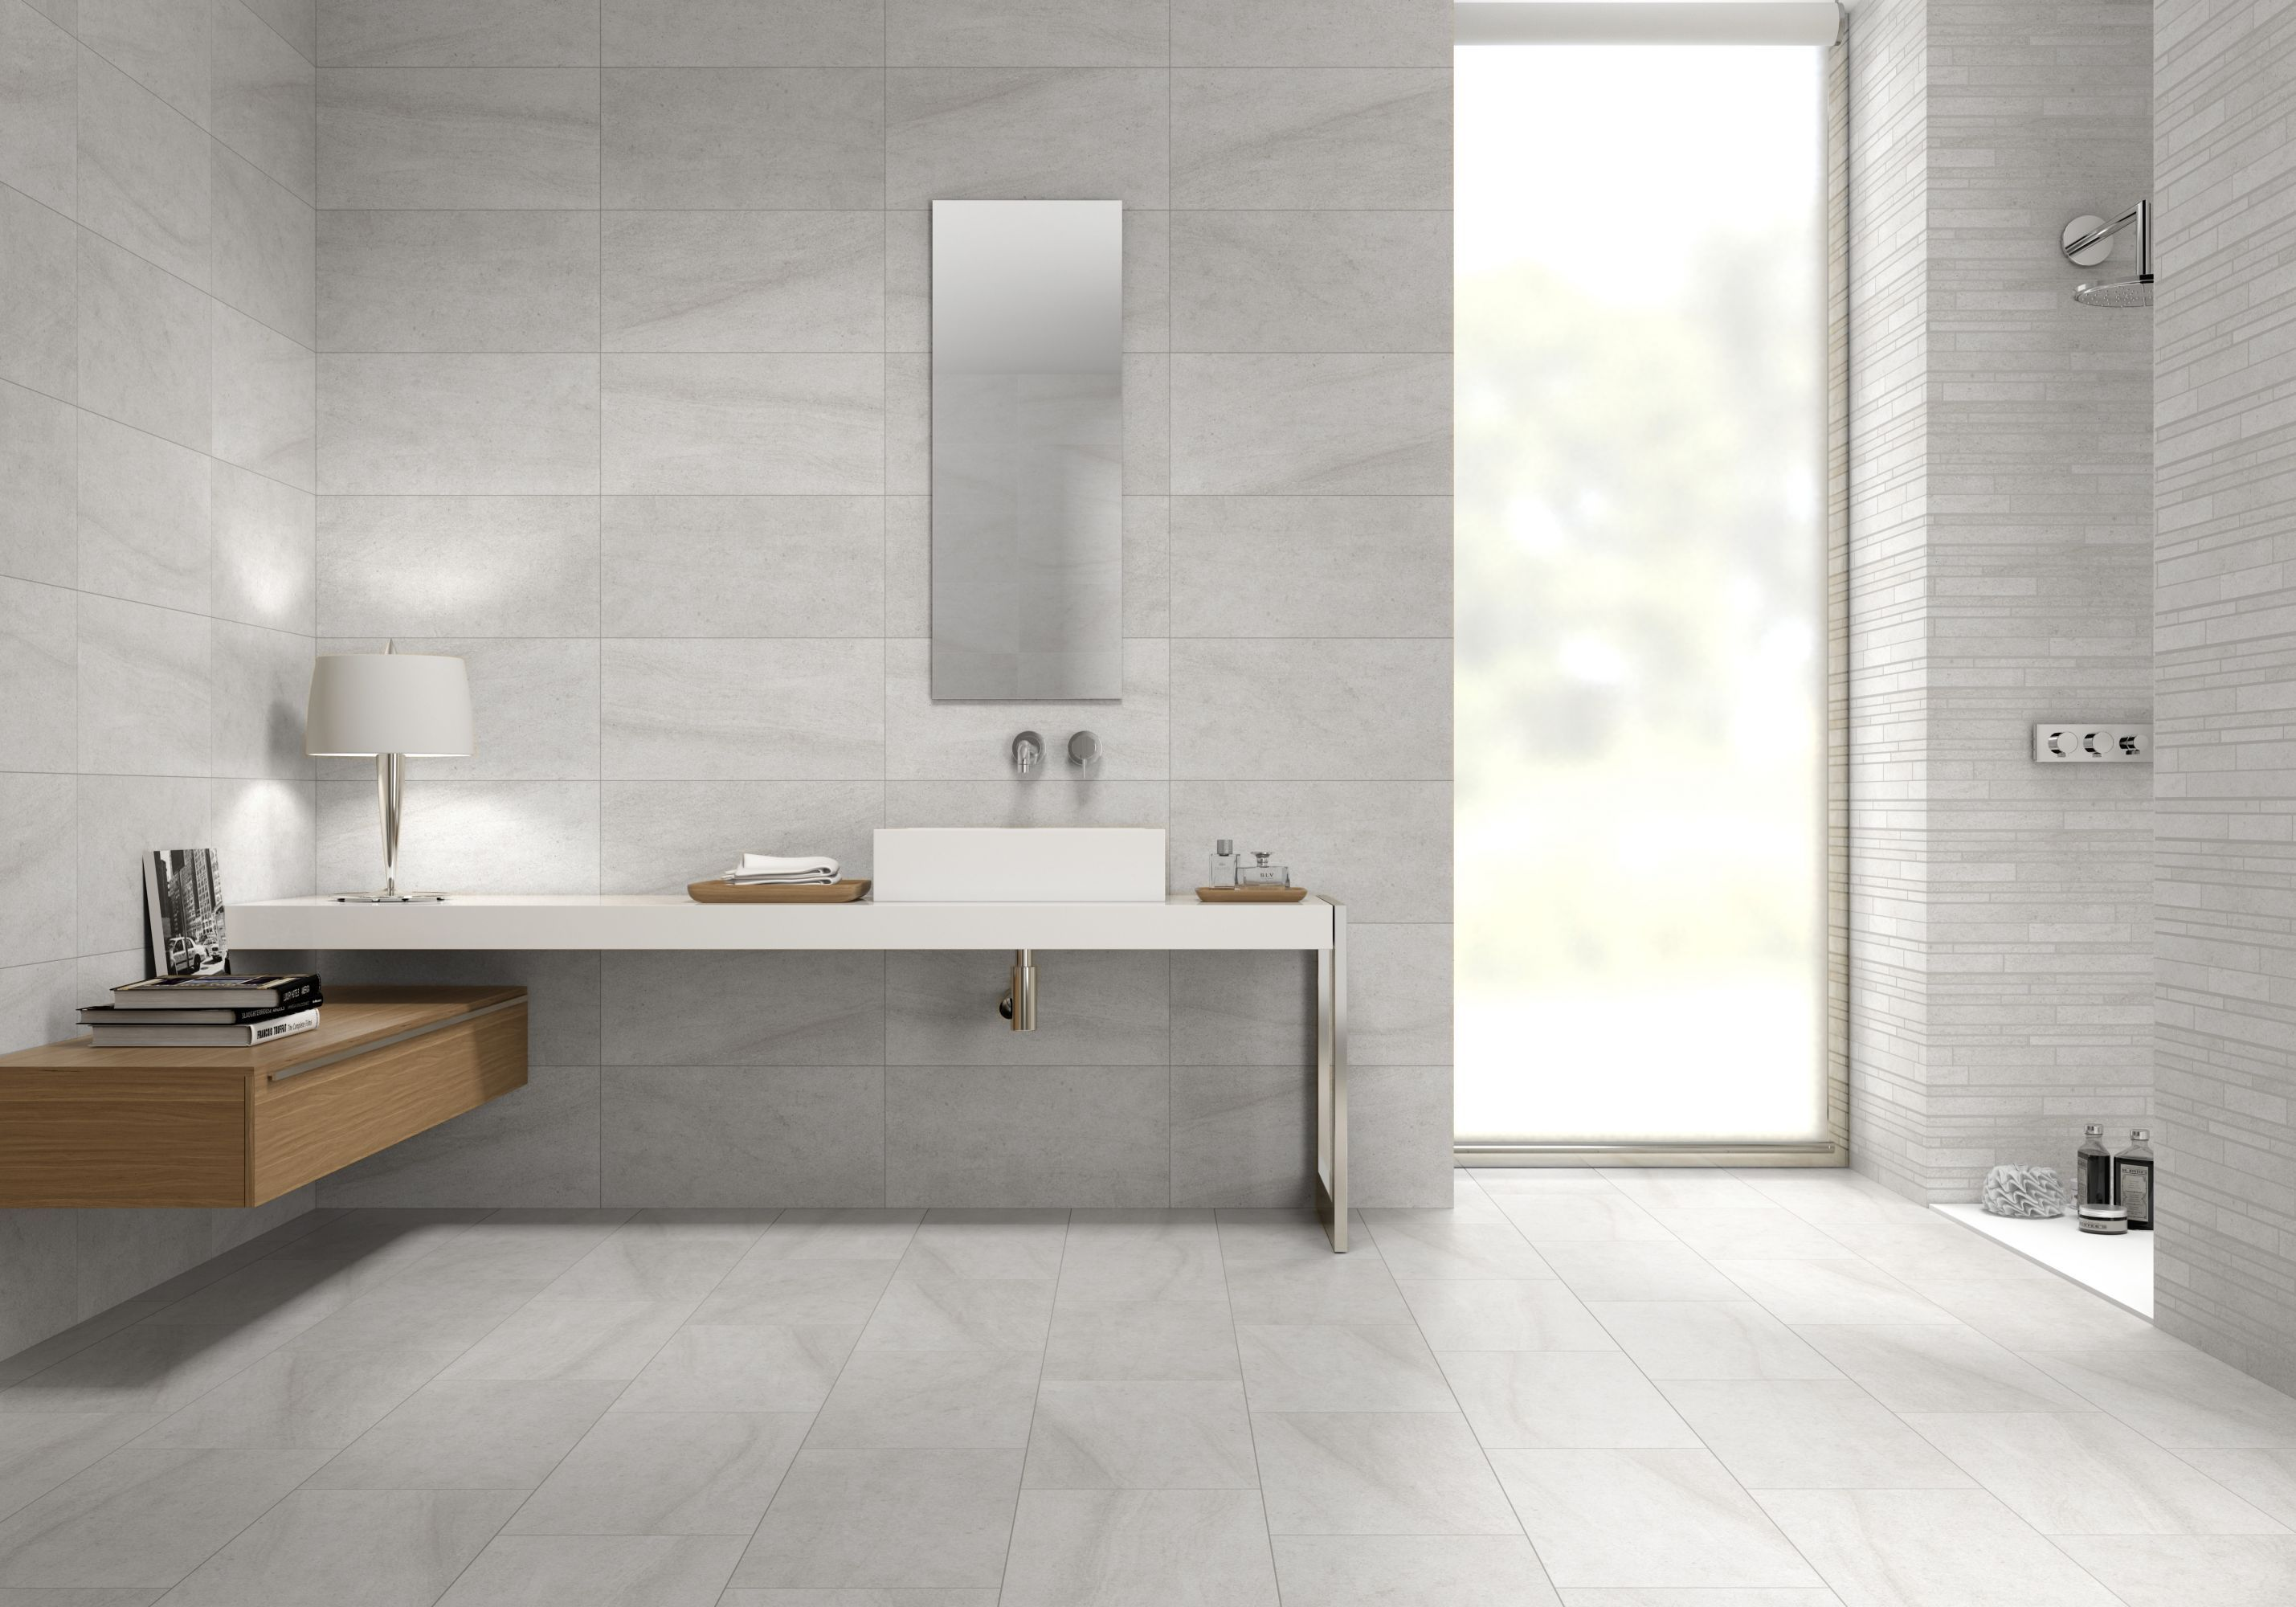 600 x 300 tile patterns google search bathrooms for Tile for small bathroom